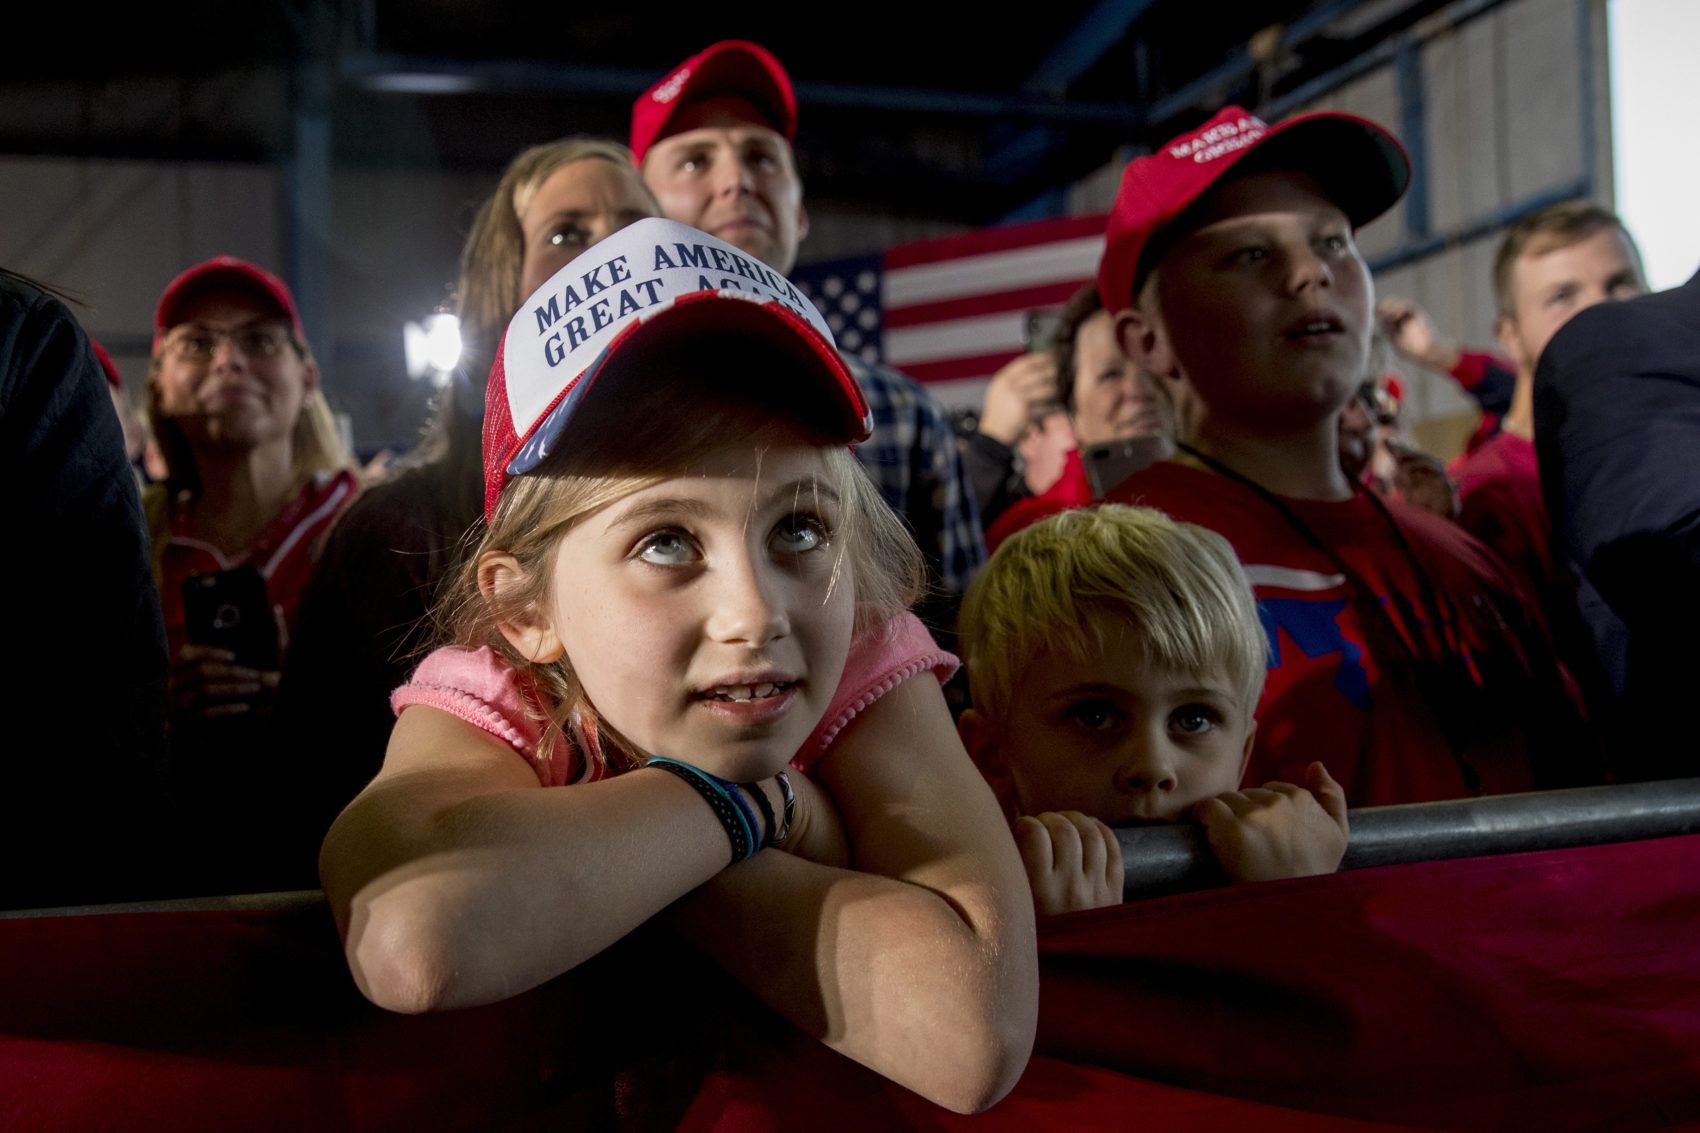 Children in the audience listen as President Donald Trump speaks at a rally at Southern Illinois Airport in Murphysboro, Ill., Saturday, Oct. 27, 2018. (Andrew Harnik/AP)